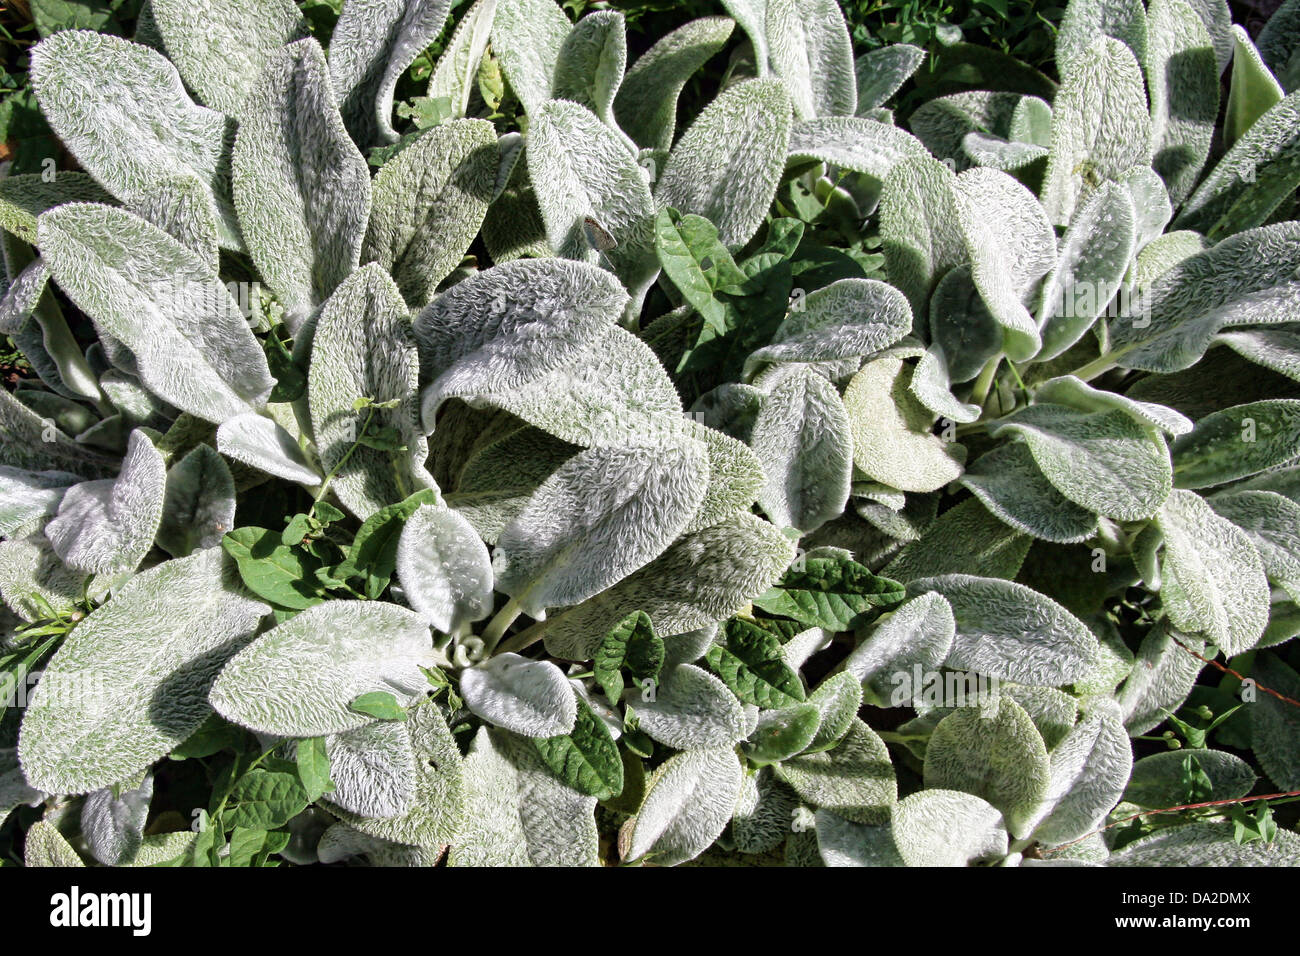 This is a close up shot of hairy leaves Stachys lanata like nice nature background. - Stock Image